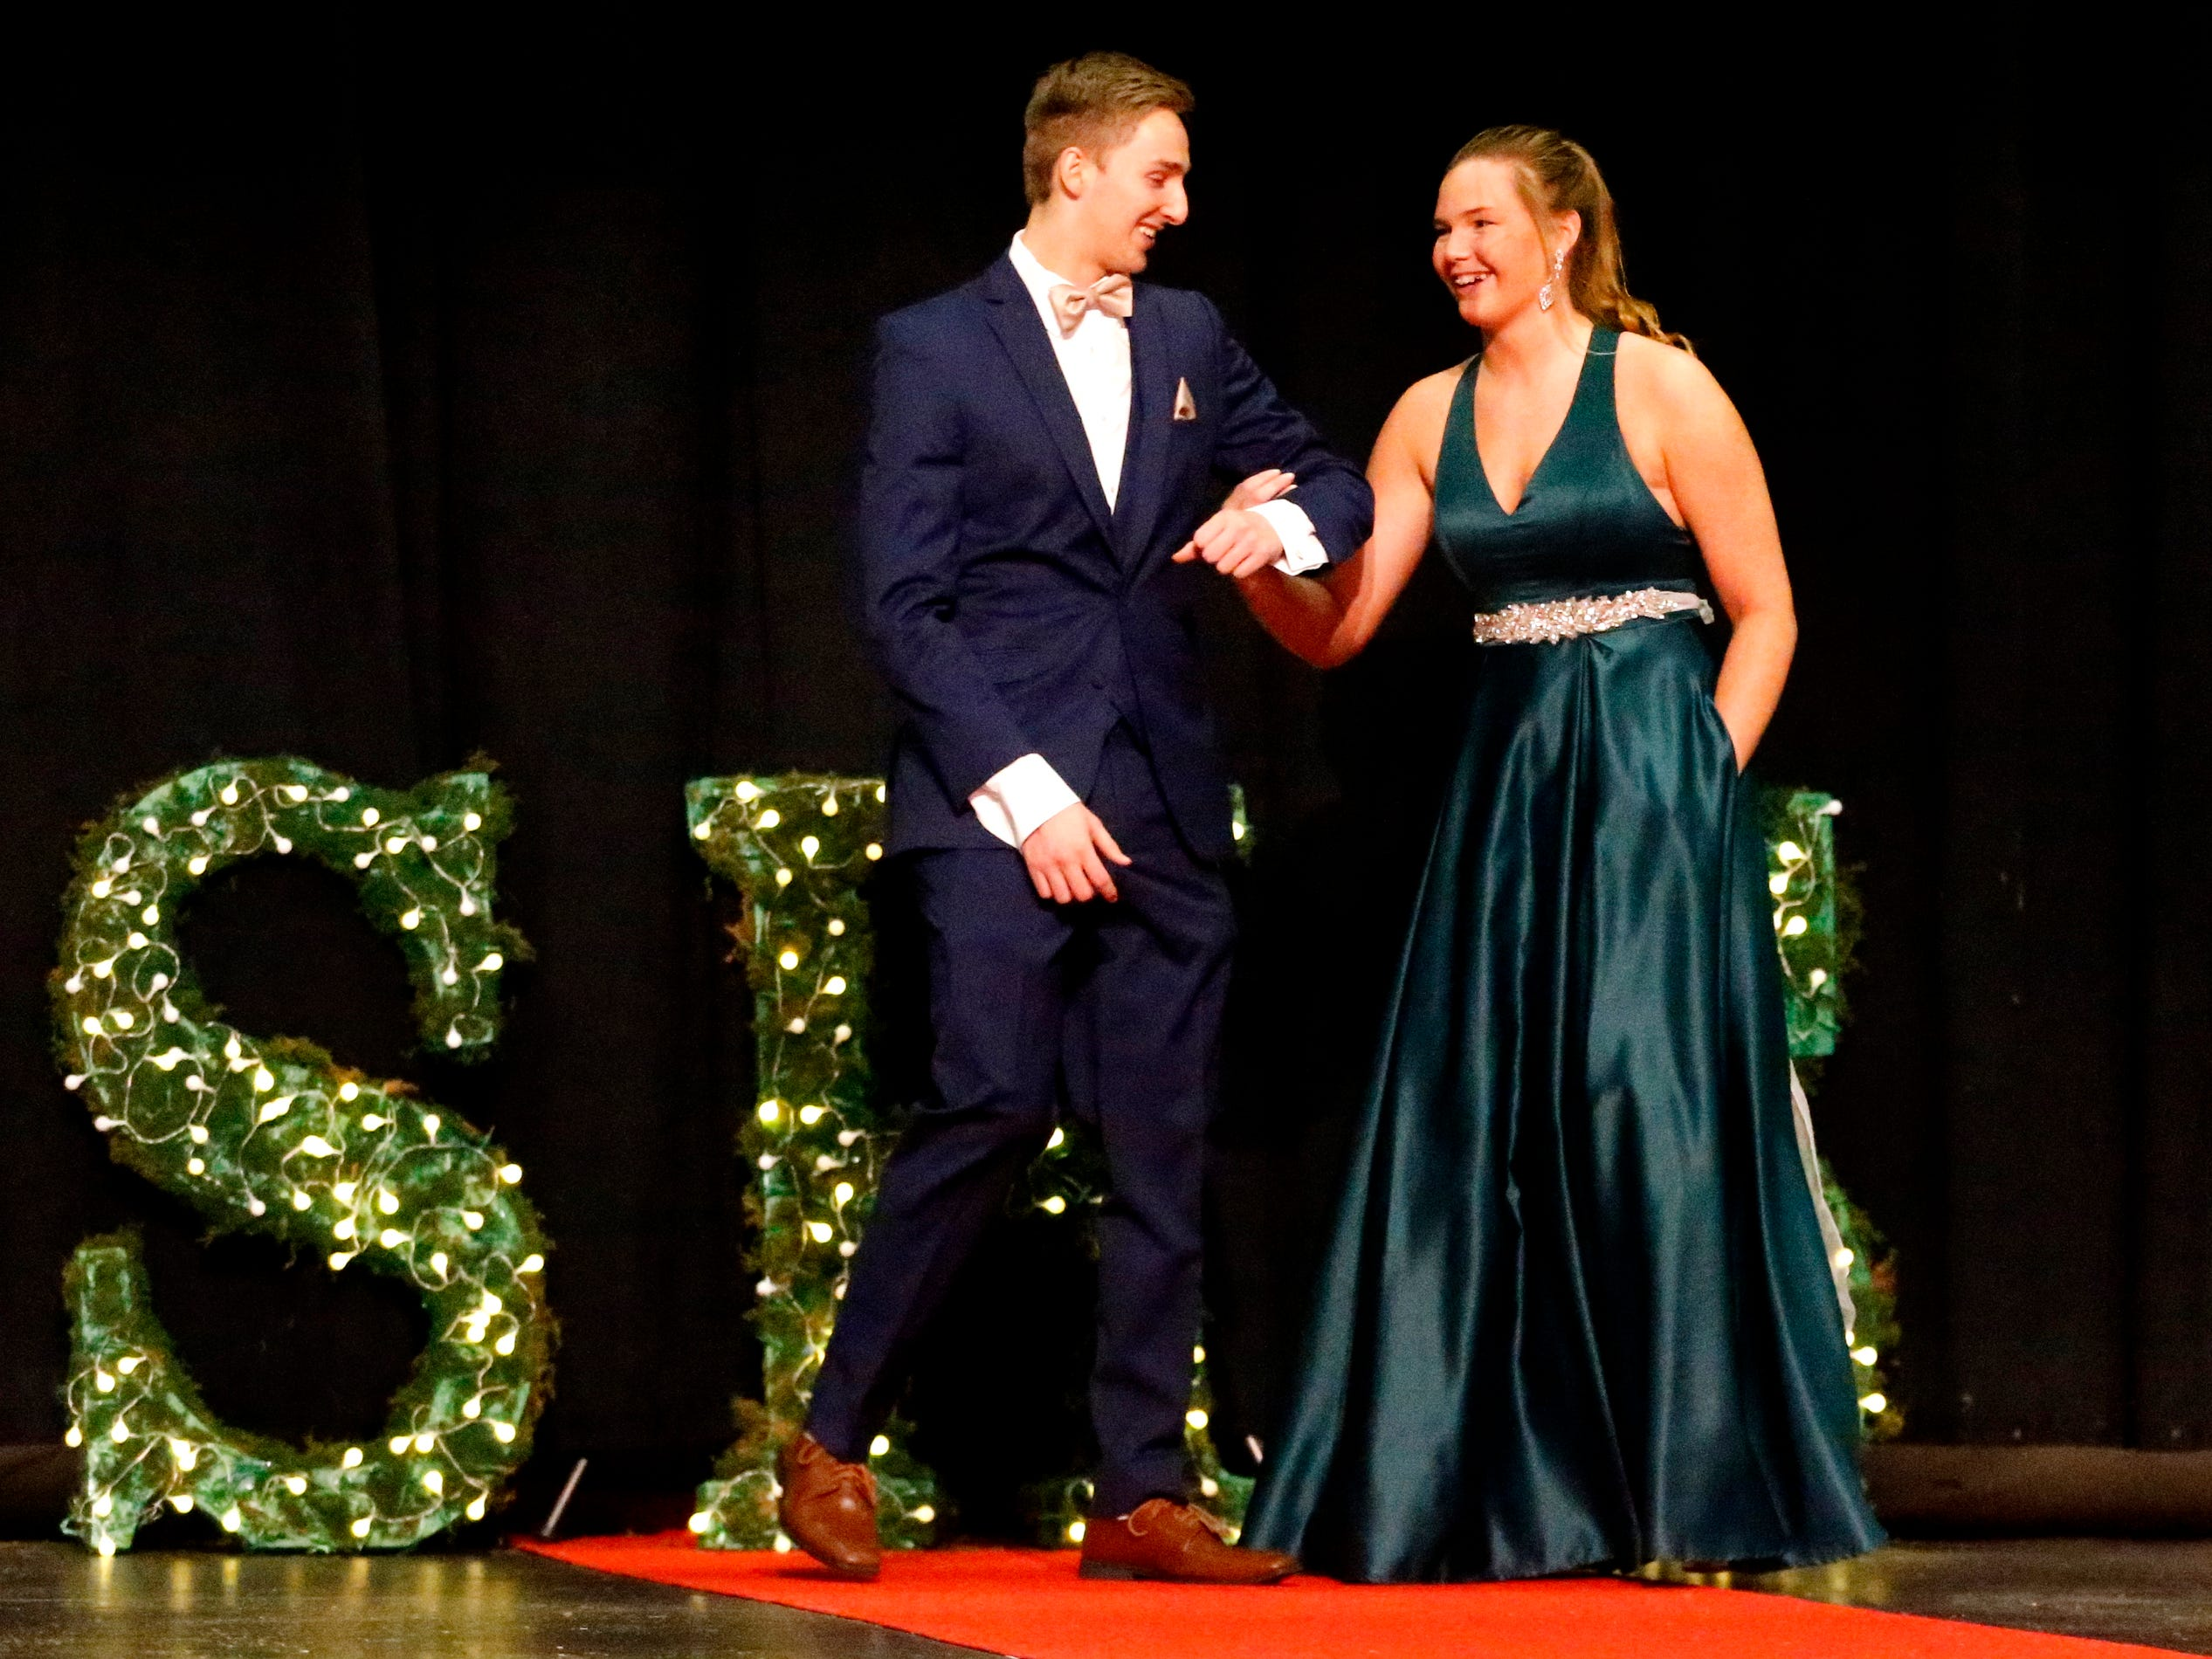 Tyler Erdman, left and Taylor Patterson, right show off the latest in prom fashions during the Siegel Prom Fashion show on Thursday, Feb. 14, 2019.